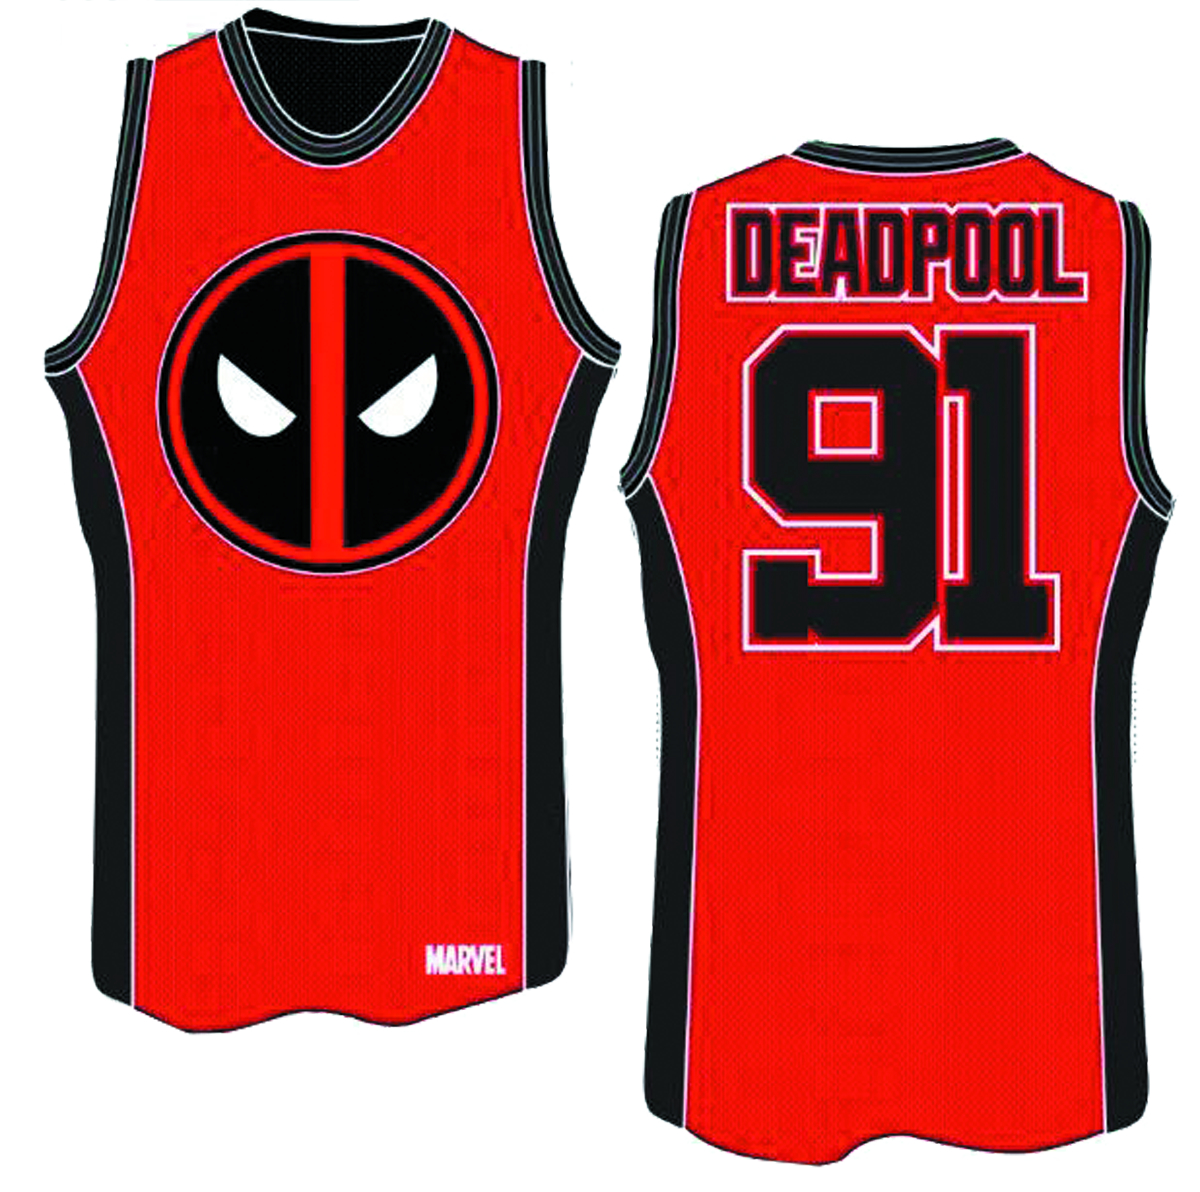 DEADPOOL WADE BASKETBALL JERSEY LG